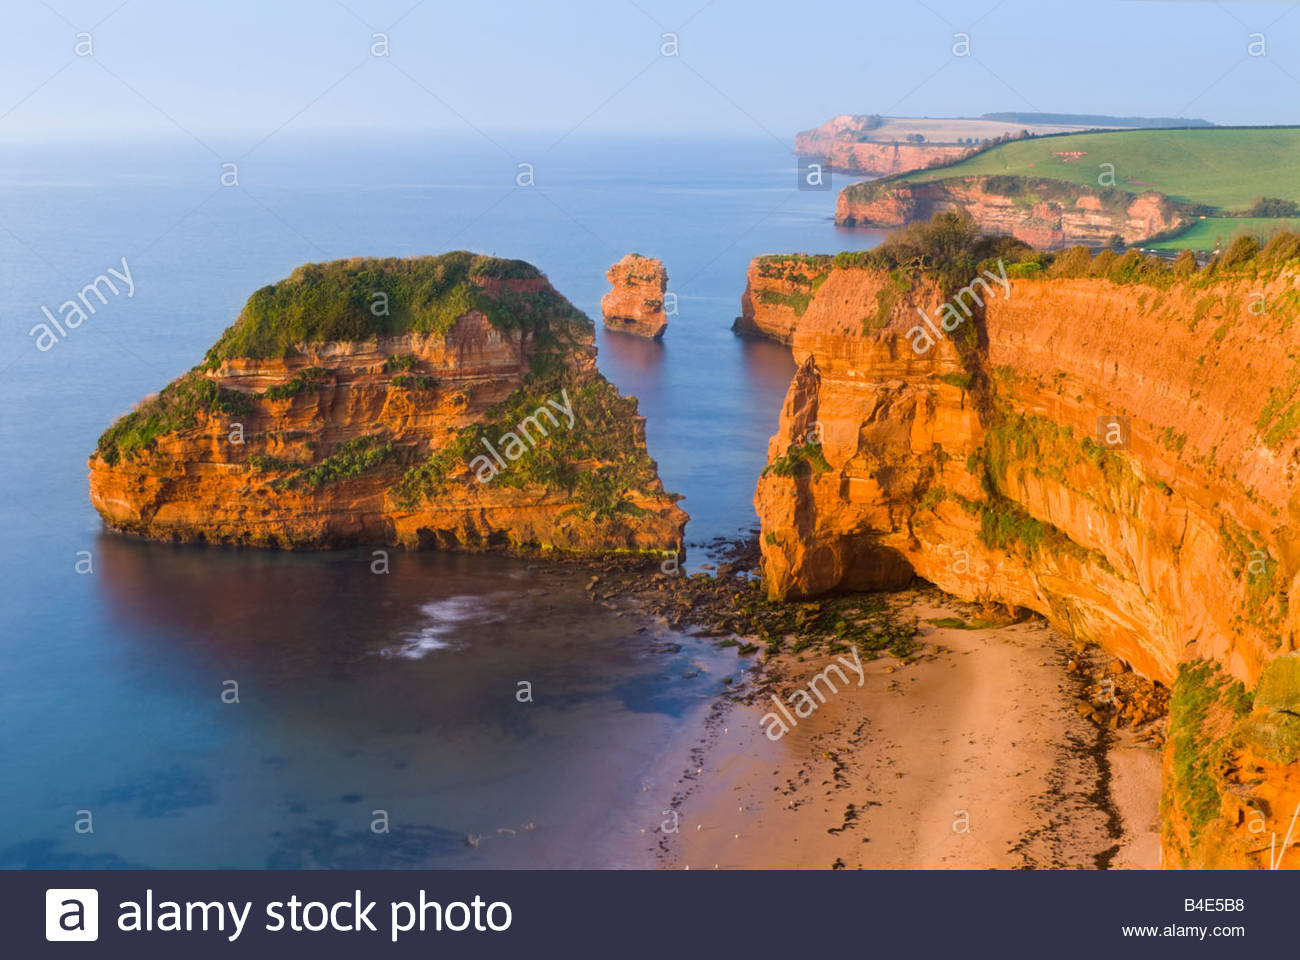 Ladram Bay, near Sidmouth, East Devon, South West England. - Stock Image